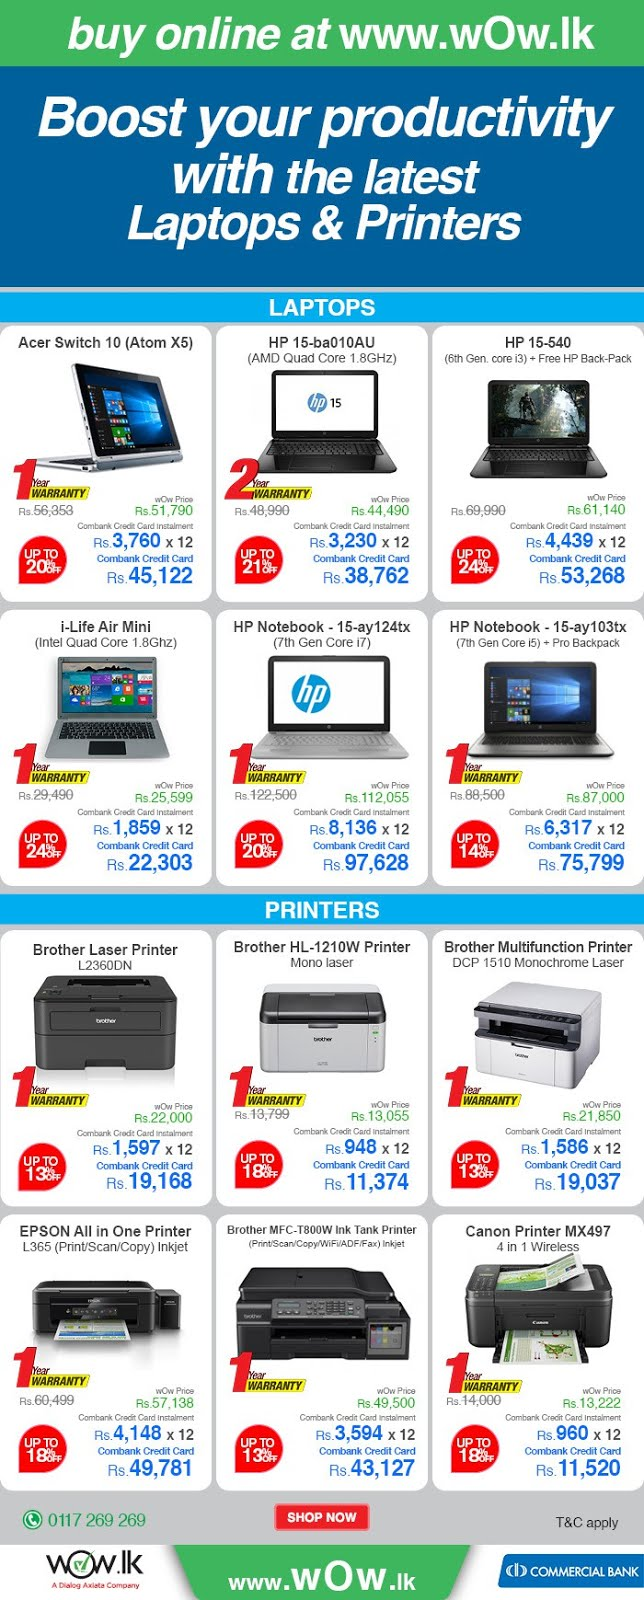 http://www.wow.lk/mall/buyonline/electronics/?Ns=sku.inventoryAvailability%7C0&utm_source=dailymail&utm_medium=Newsletter&utm_campaign=laptopsandprinters